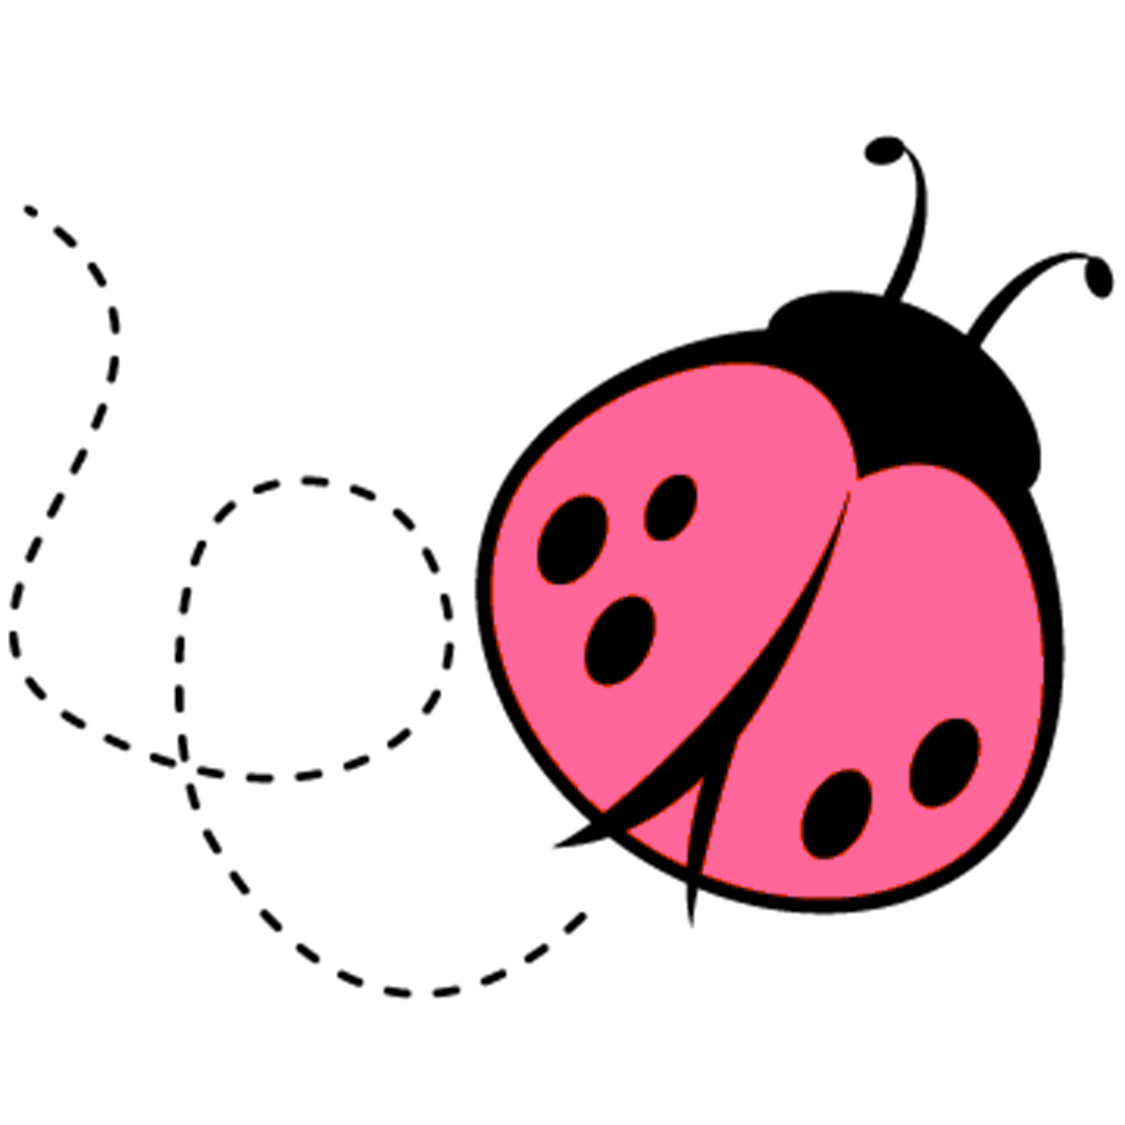 pink lady bug baby shower clipart panda free clipart